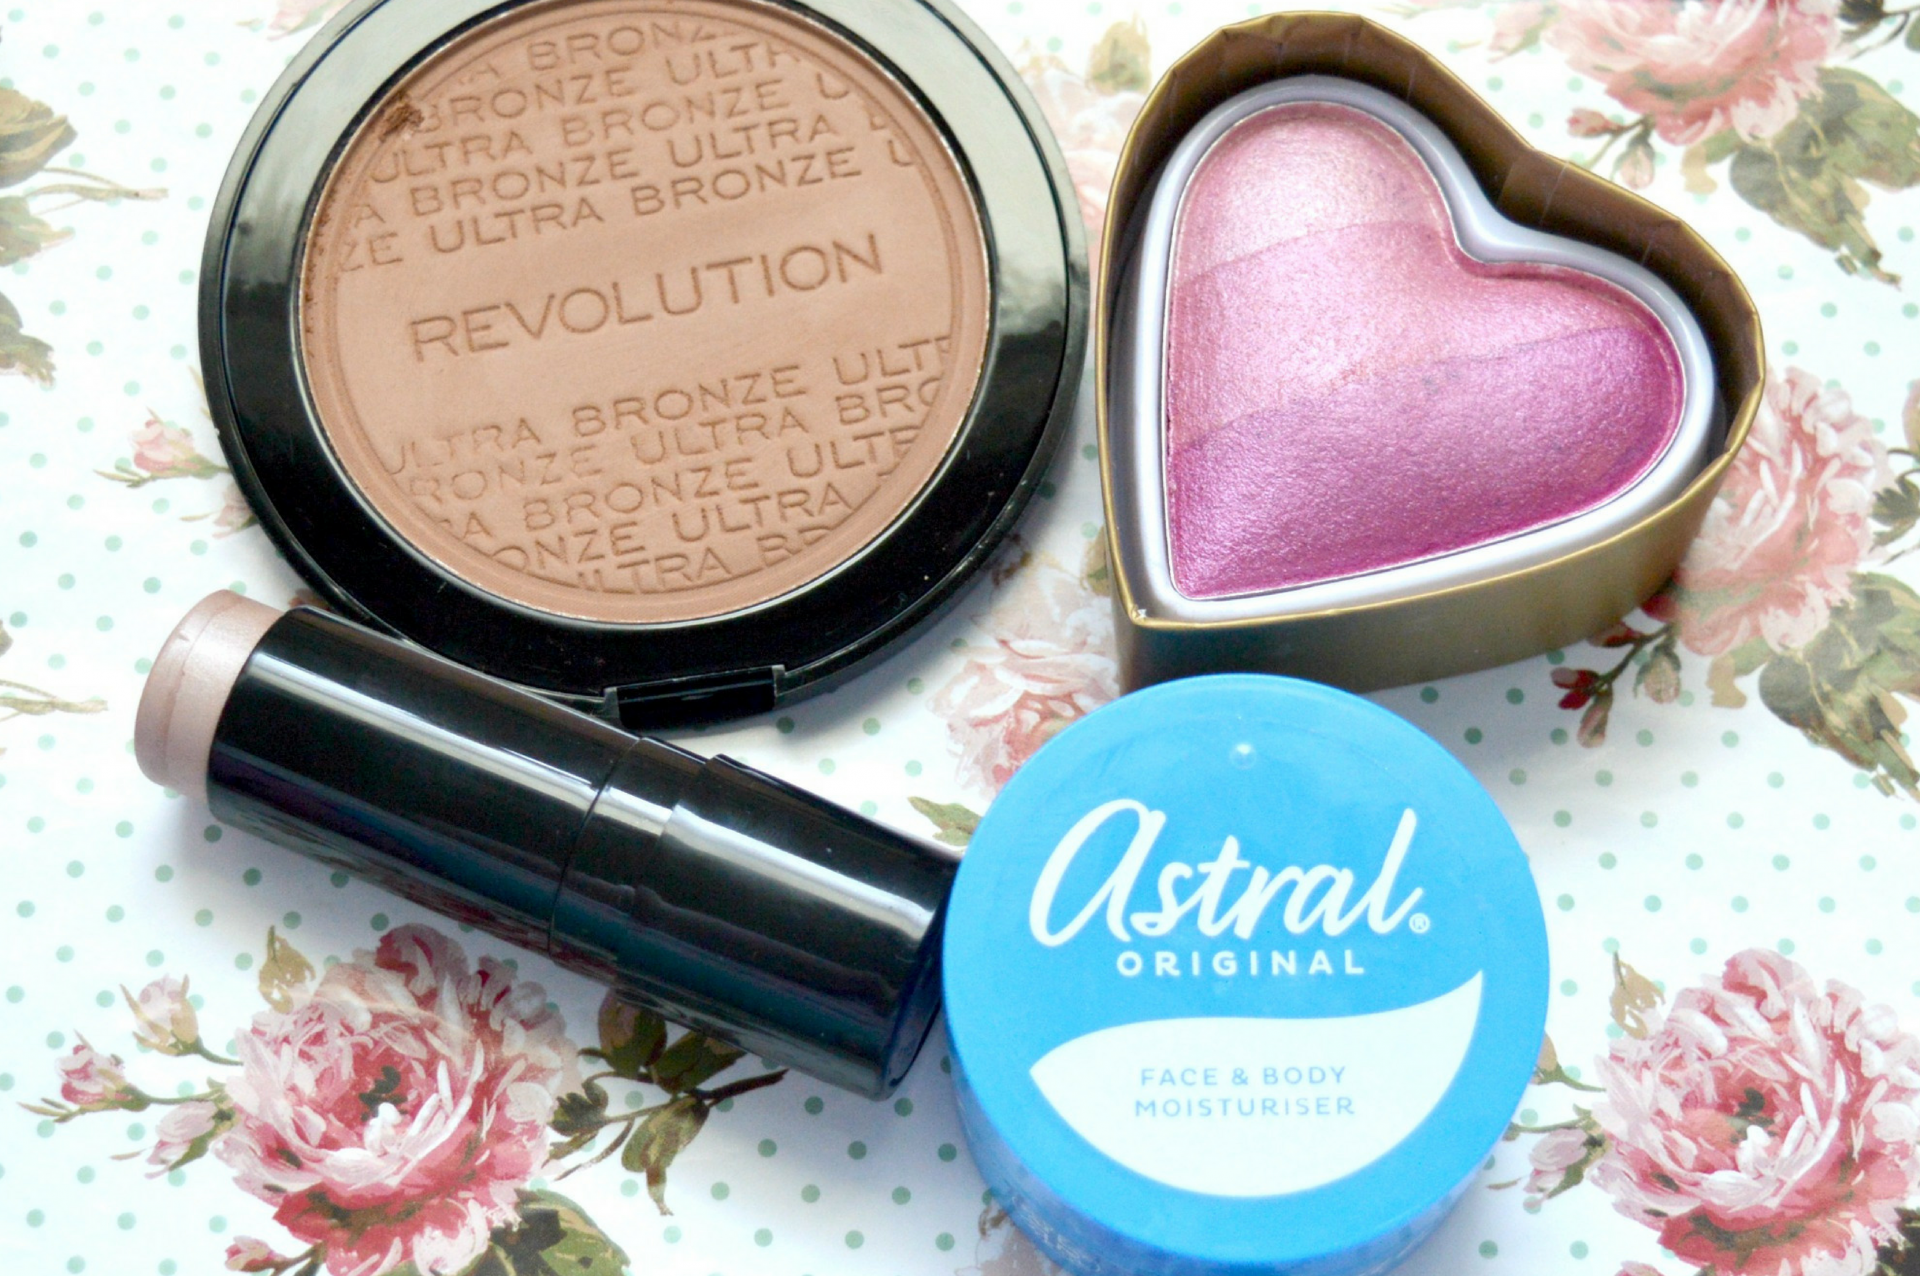 February 2017 Favourites | Makeup Revolution Ultra Bronze, Technic Baked Hearts Blusher, Soap and Glory Glow All Out Highlight and Sculpt Cheek Stick in Ice Shimmer and Astral Original Face and Body Moisturiser